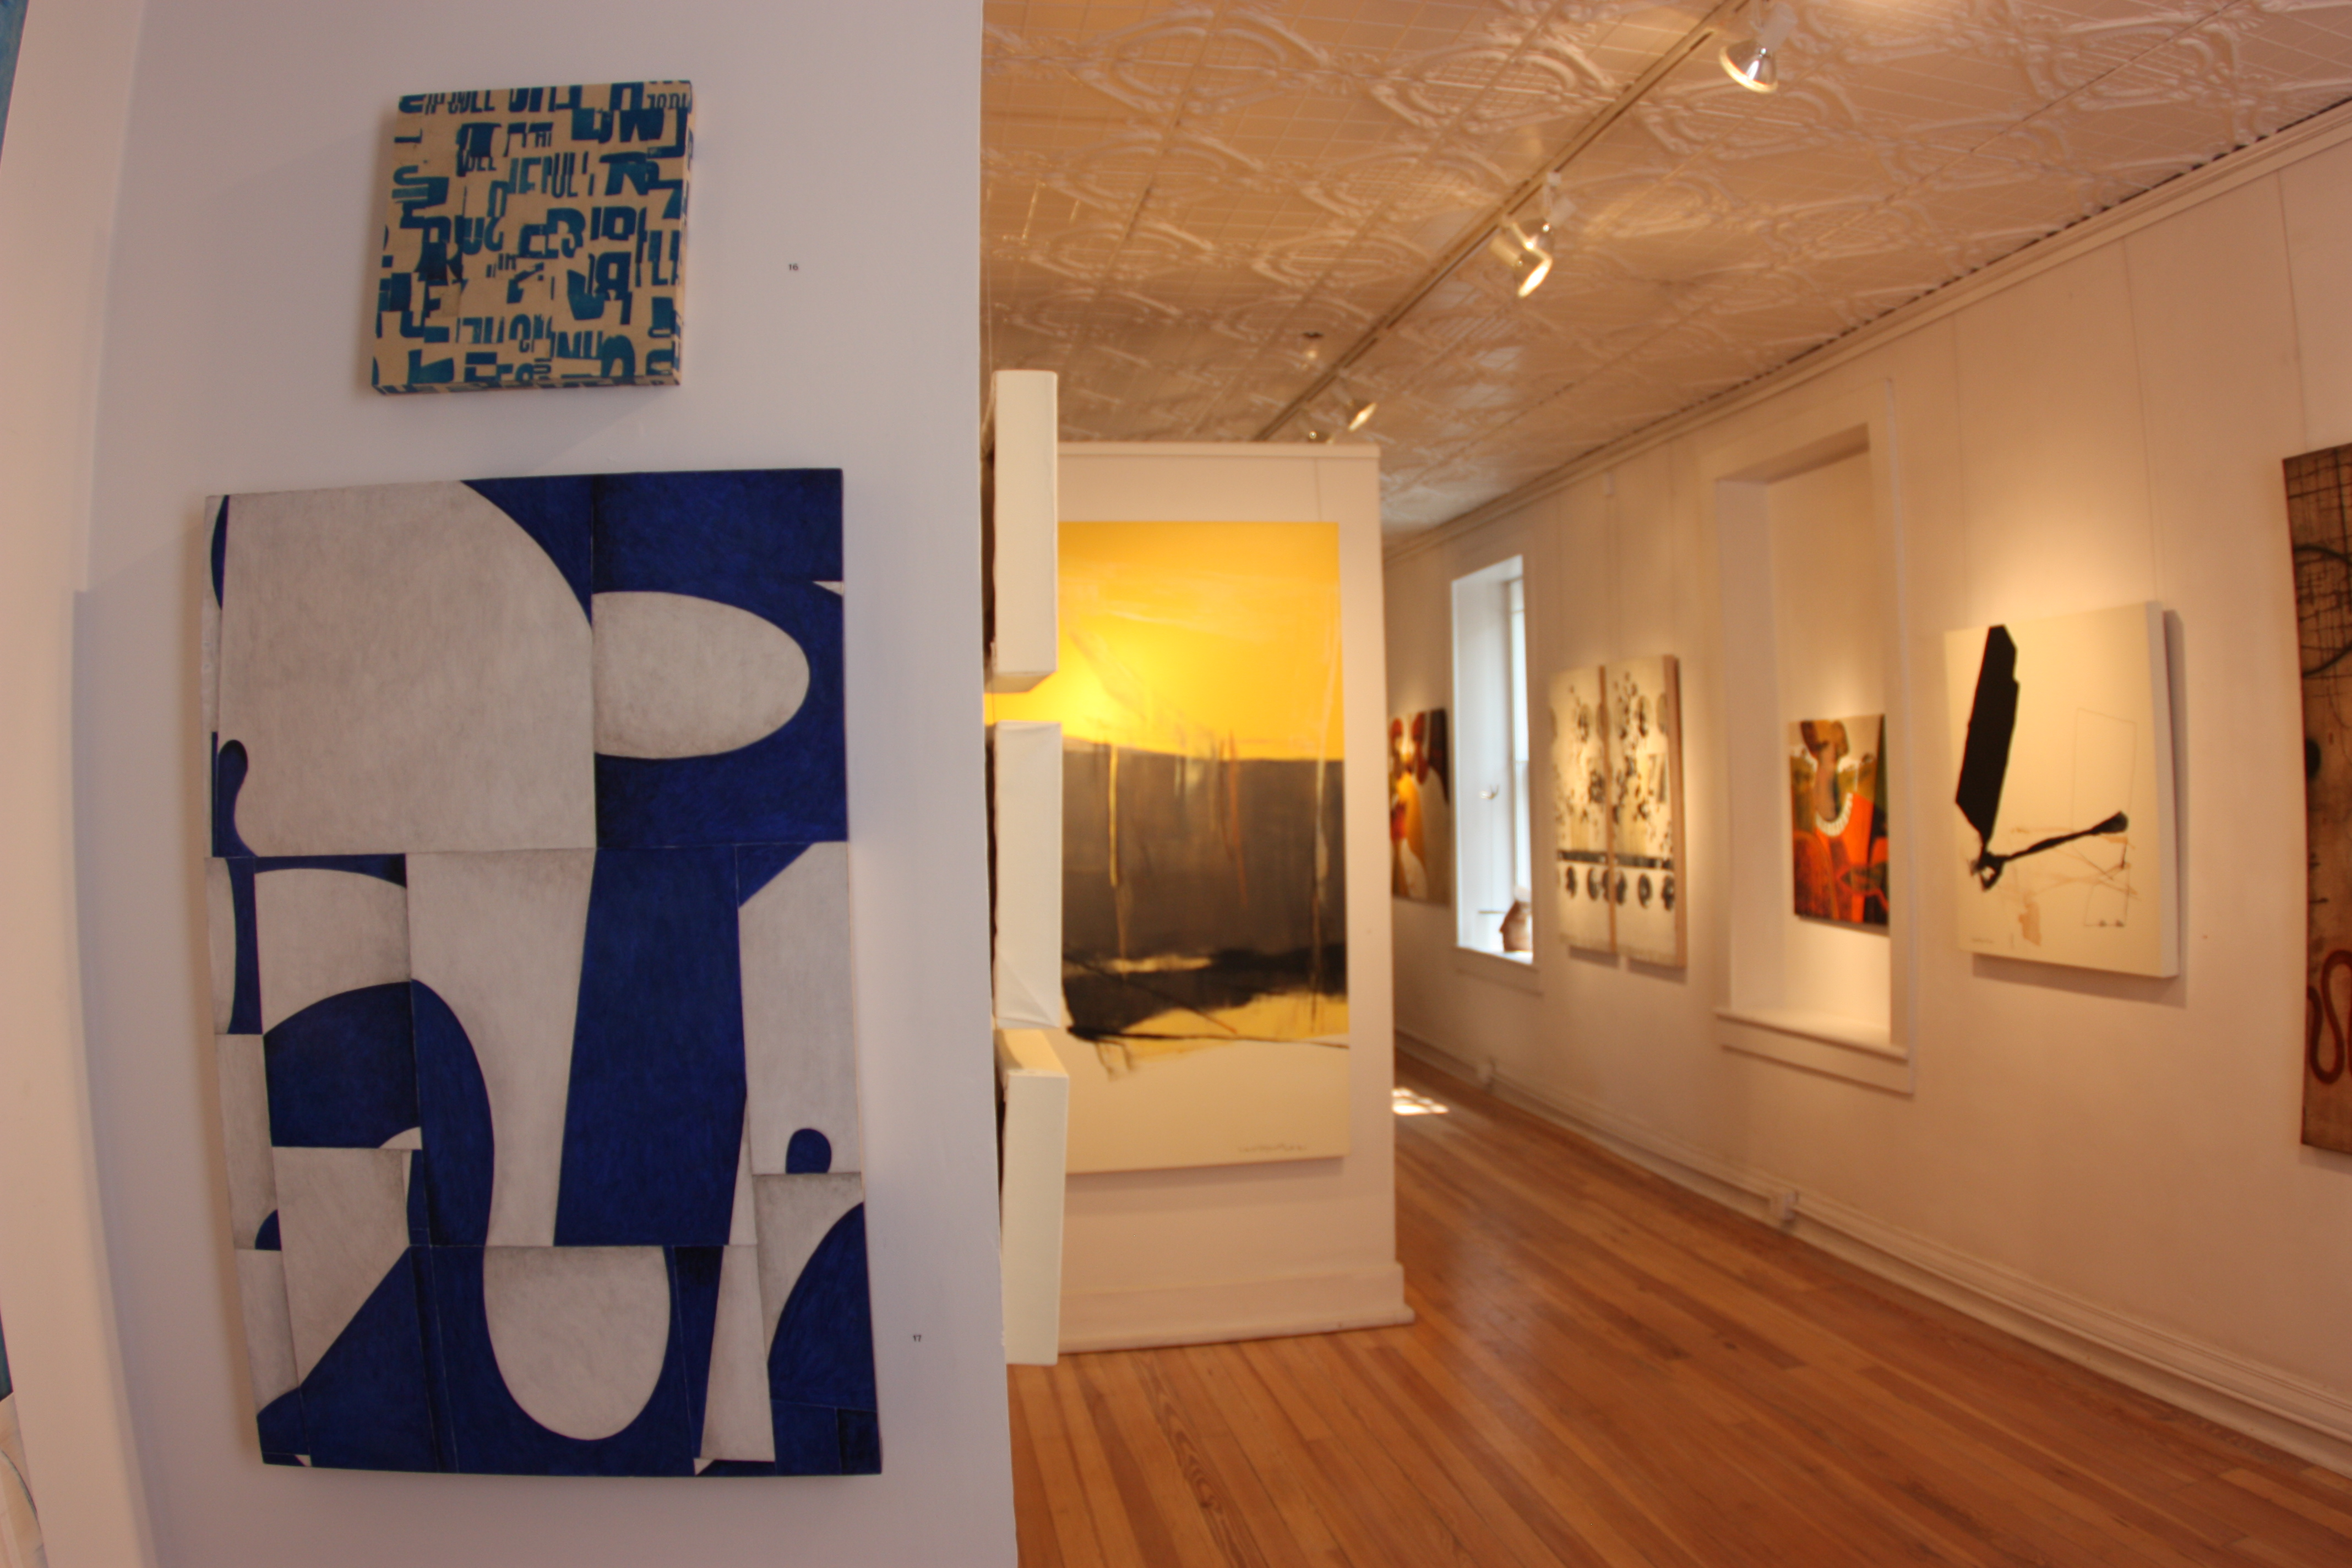 exhibition photo of a painting and a collage by Cecil Touchon at Nuart Gallery in Santa Fe, New Mexico